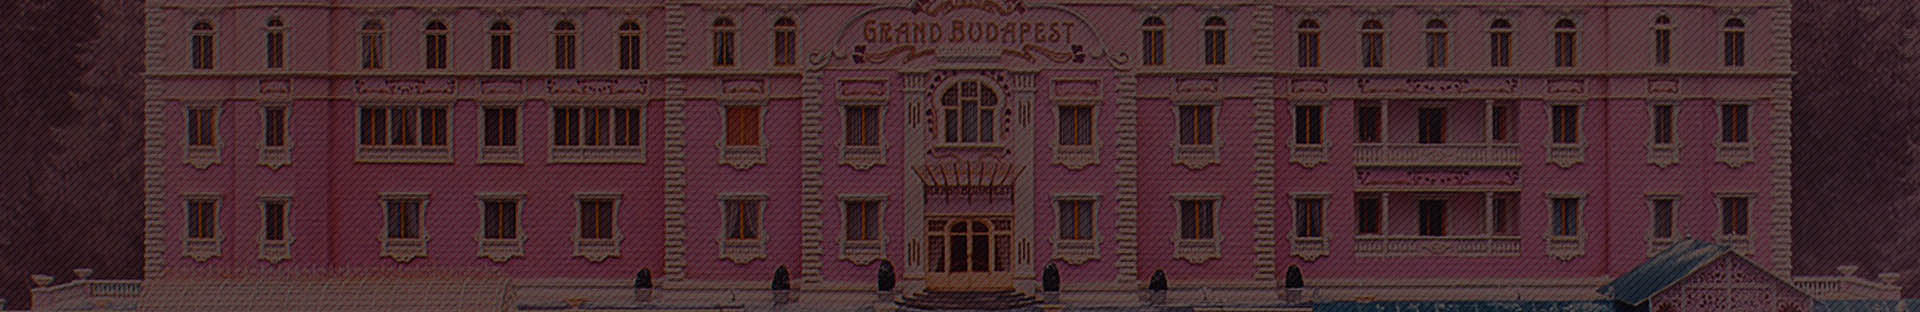 Cinematography in Grand Budapest Hotel